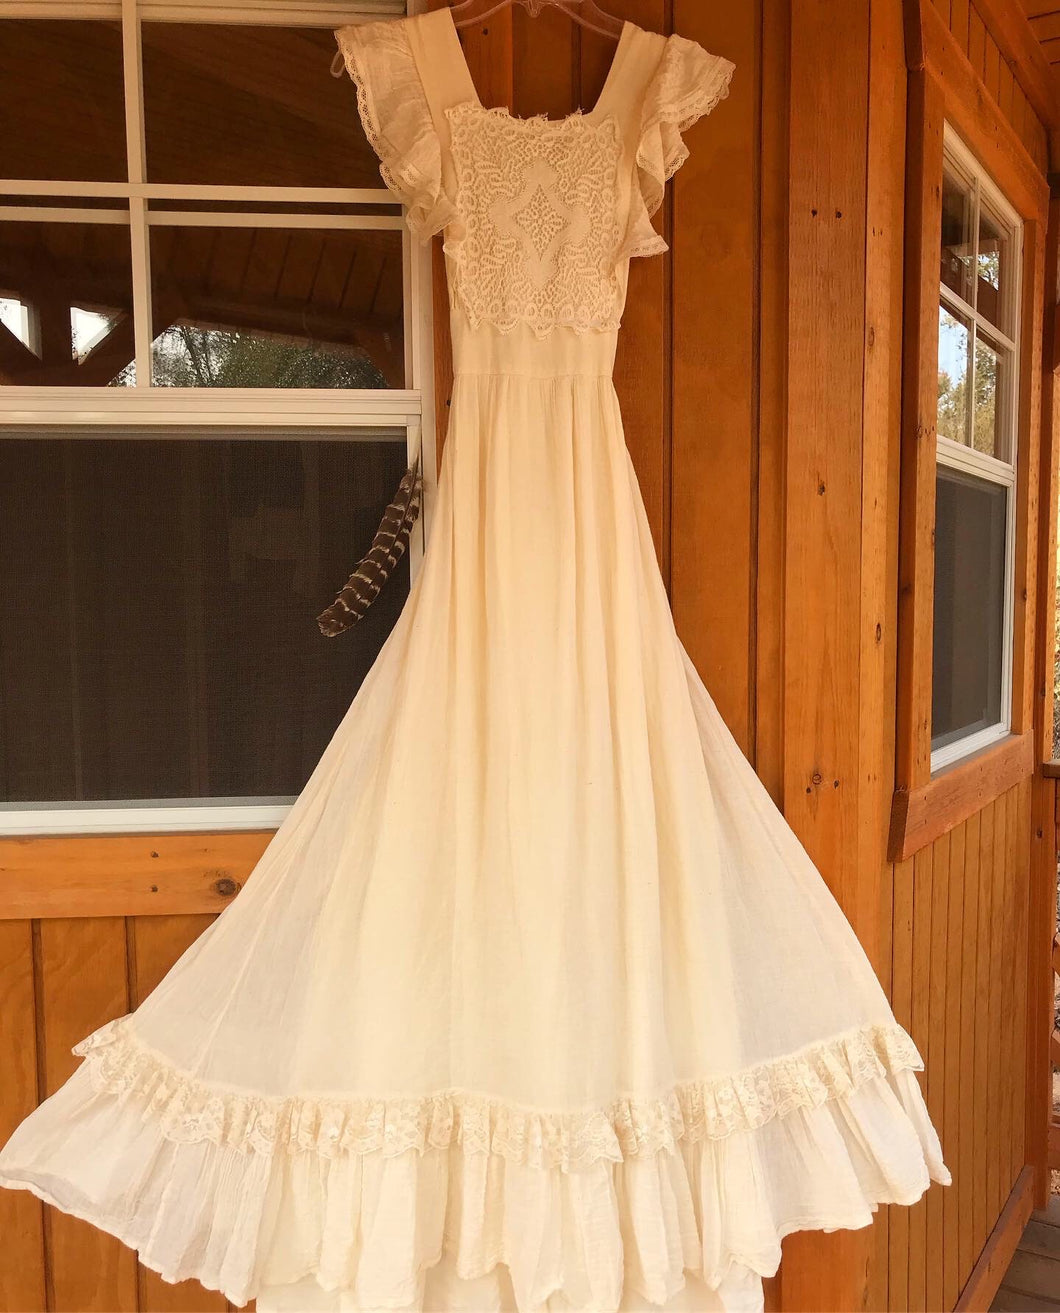 Authentic 1970's vintage ivory crepe and crochet Gunne Sax maxi sundress